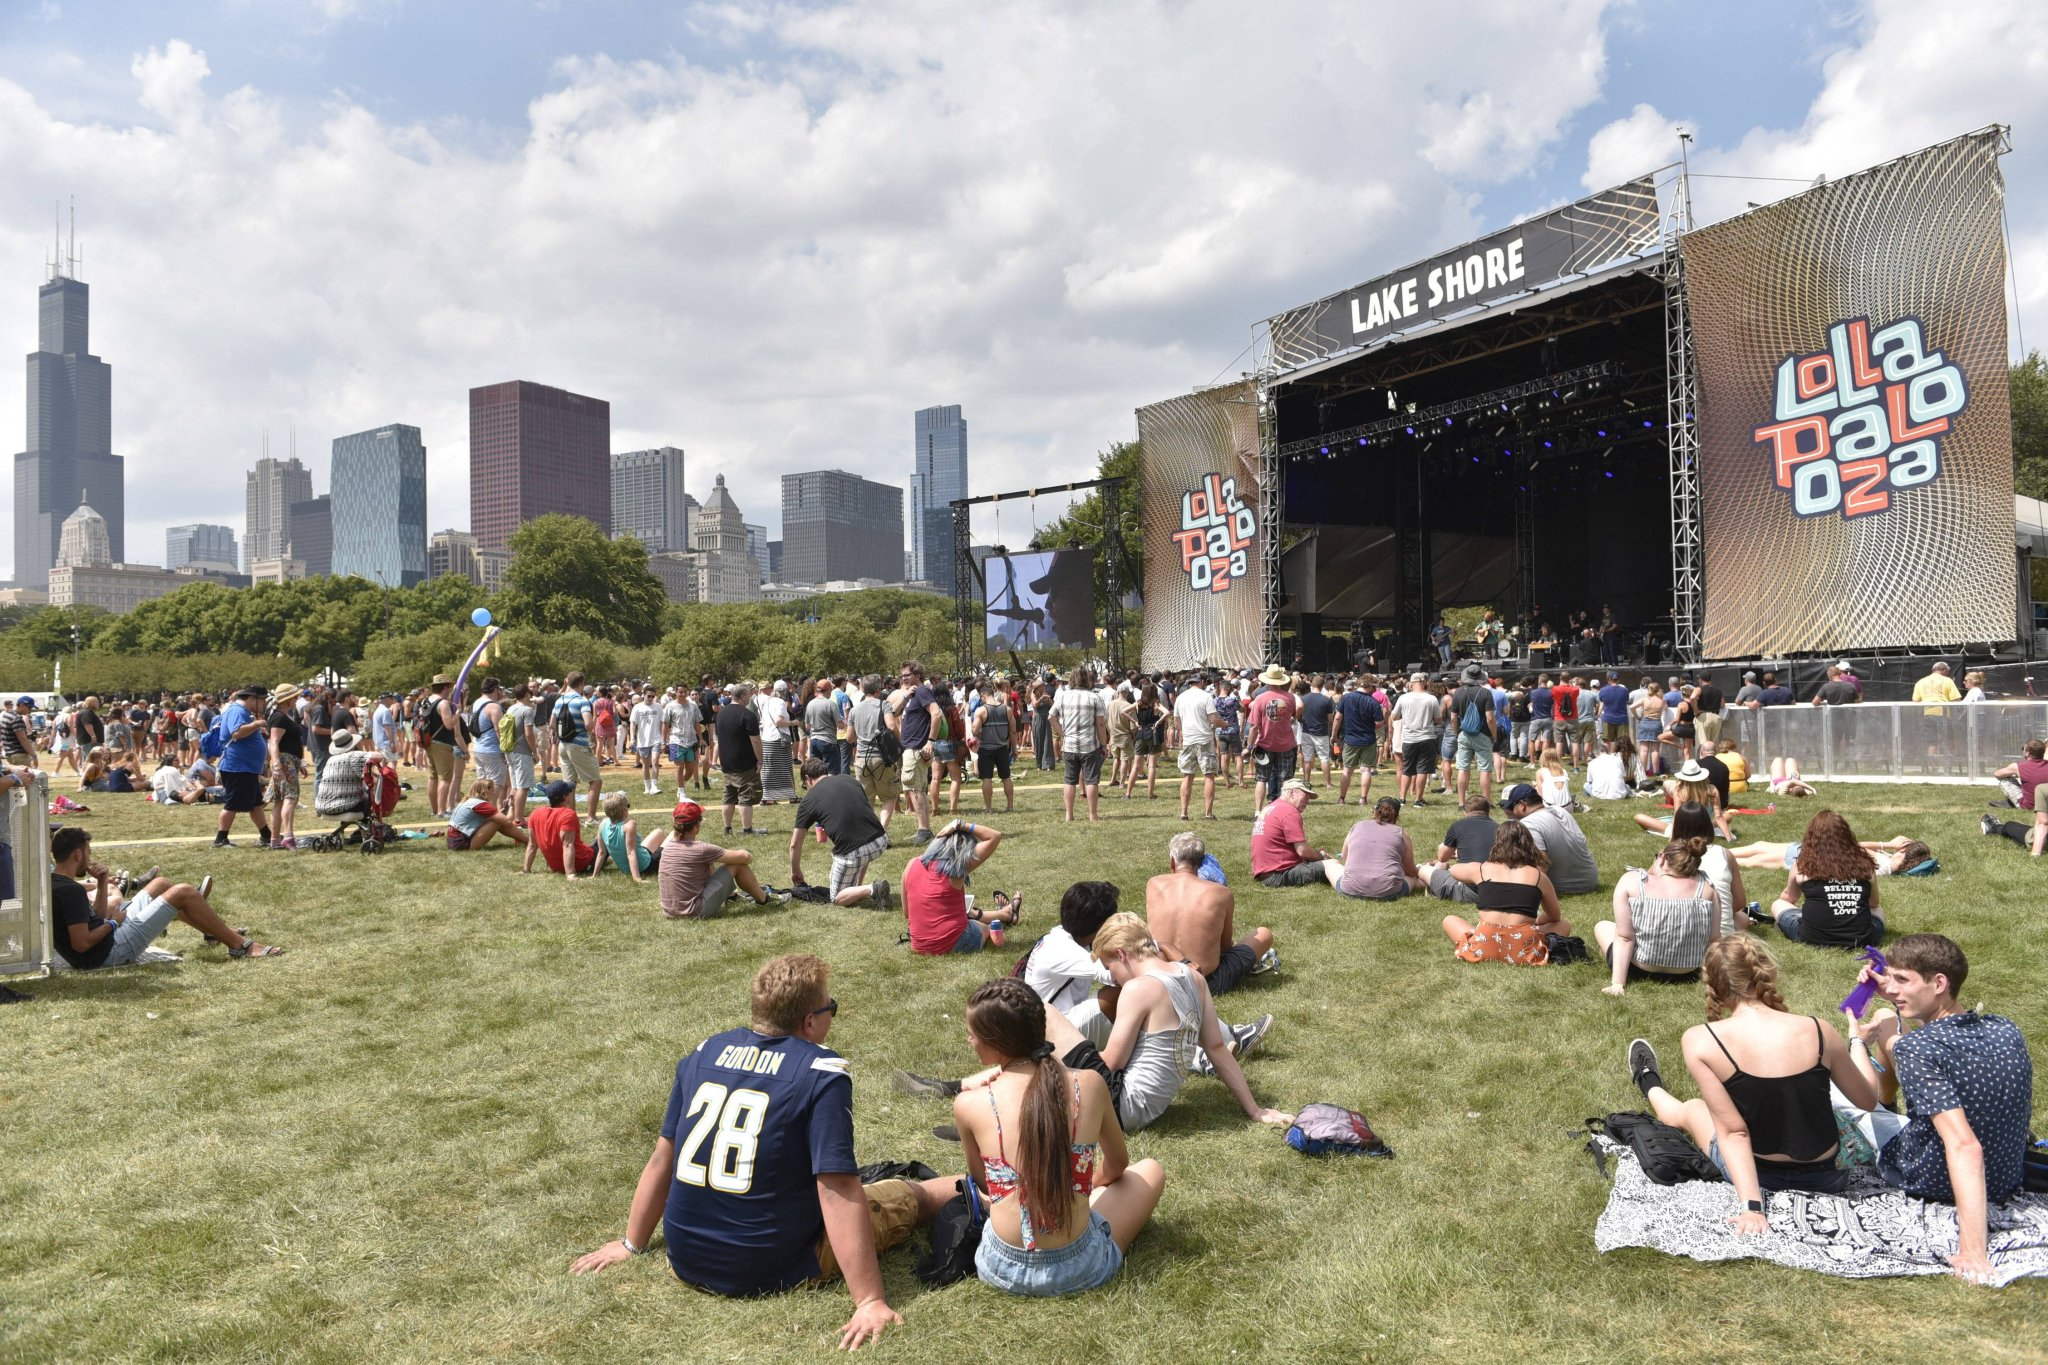 Consumer protection agency warns of possible ticket and vaccination card scams at Lollapalooza